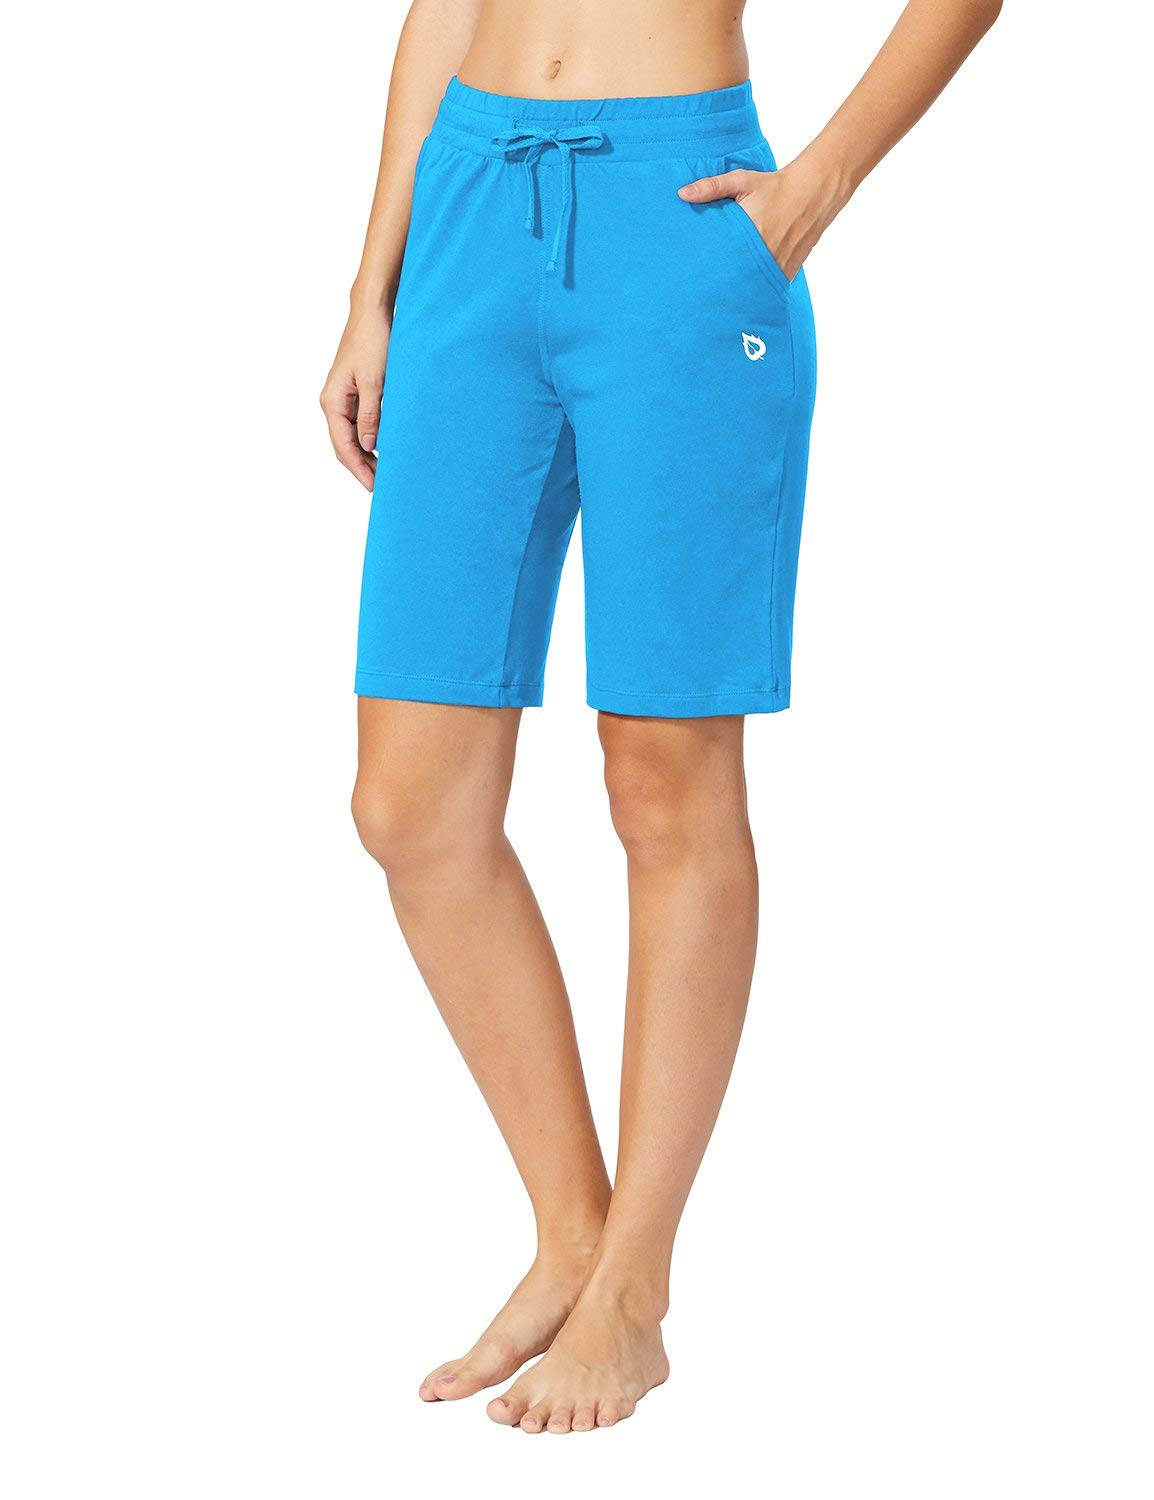 Baleaf Women's Active Yoga Lounge Bermuda Shorts with Pockets Lapis Blue Size M by Baleaf